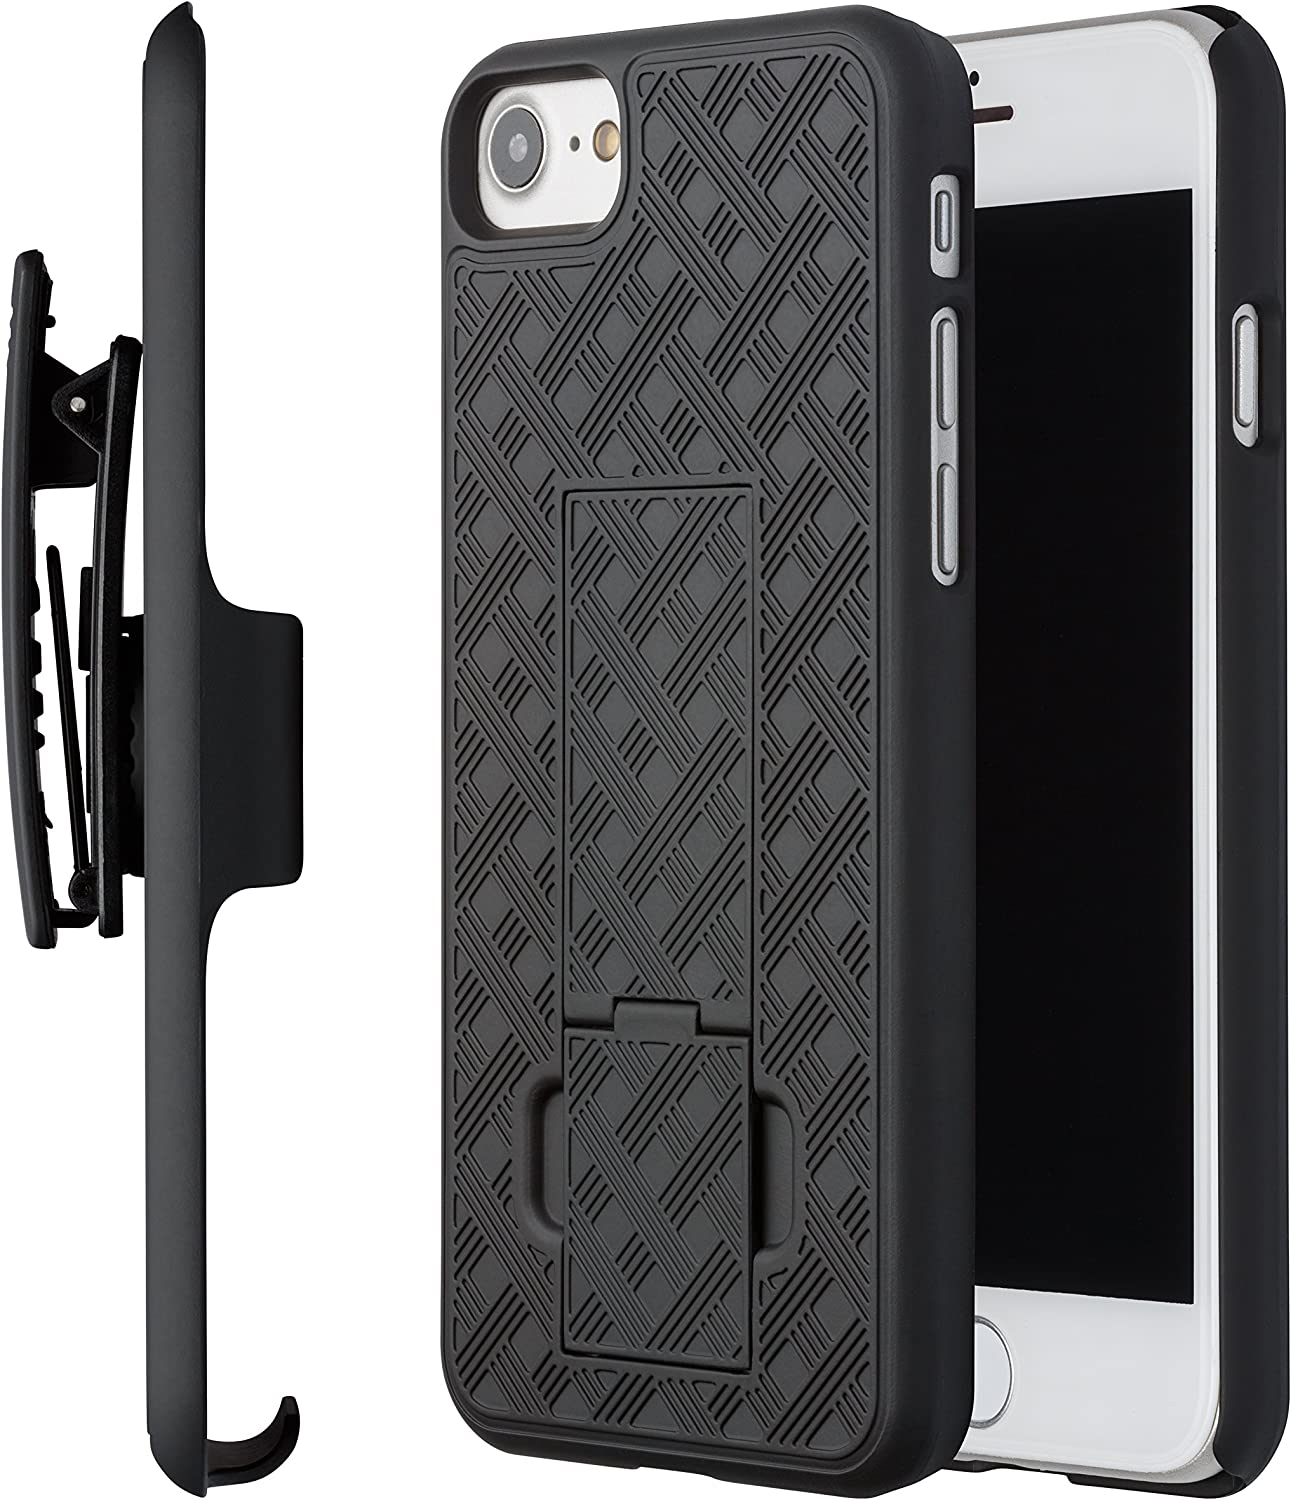 iPhone 8 Plus Case, Moona Shell Holster Combo Case for Apple iPhone 8 Plus with Kickstand & Belt Clip '2 Year Warranty' - iPhone 8 Plus Belt Clip Case Thin Holster